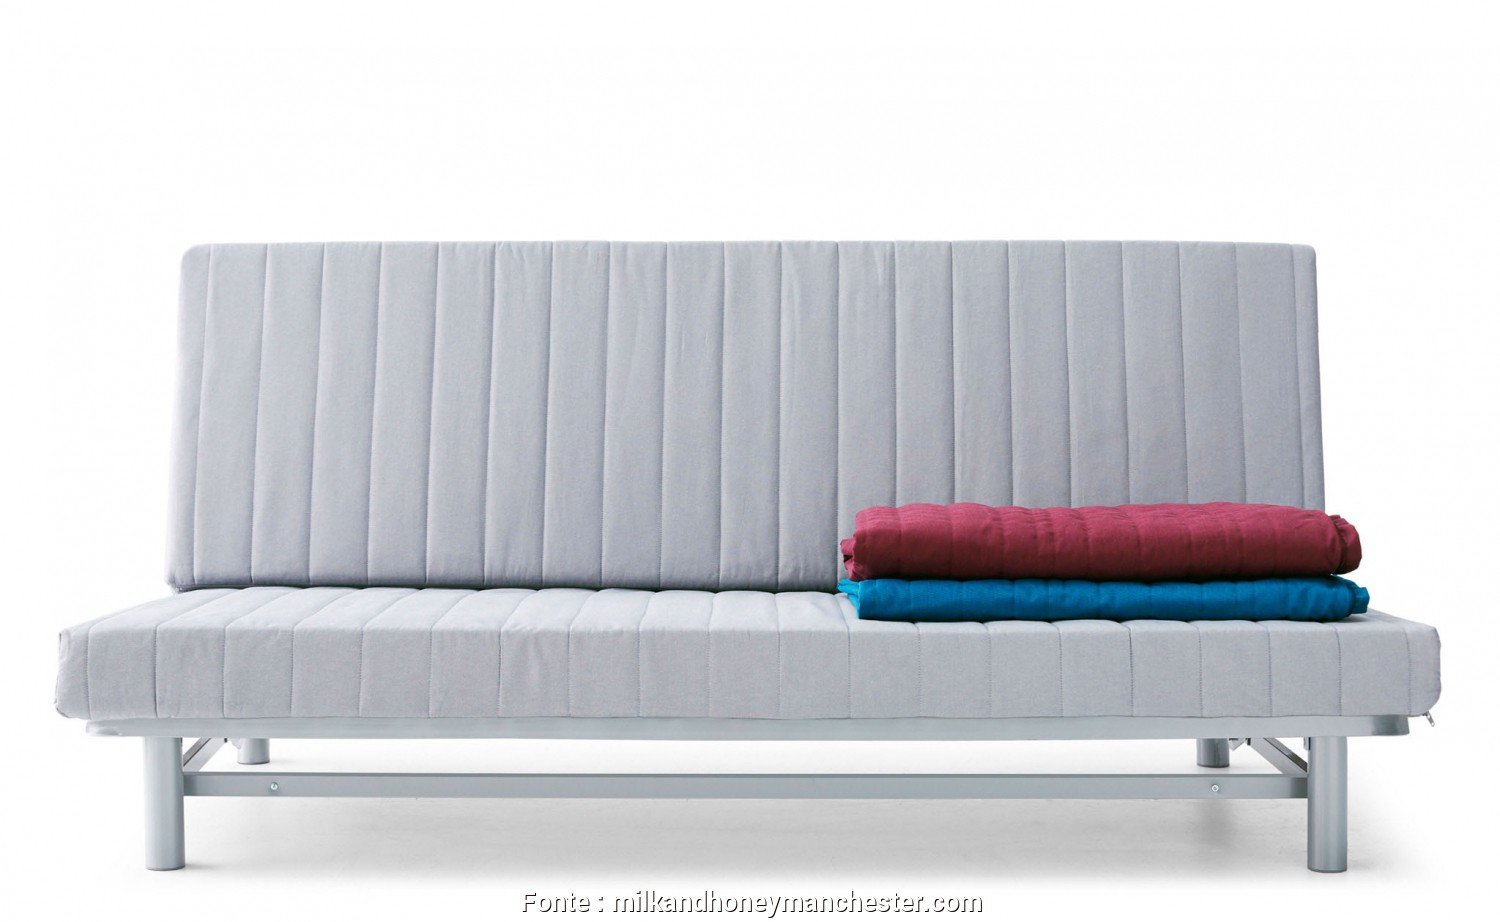 Beddinge Ikea Lovas, Ideale Sofa: Ikea Beddinge Lovas, Practical Usage Ideas